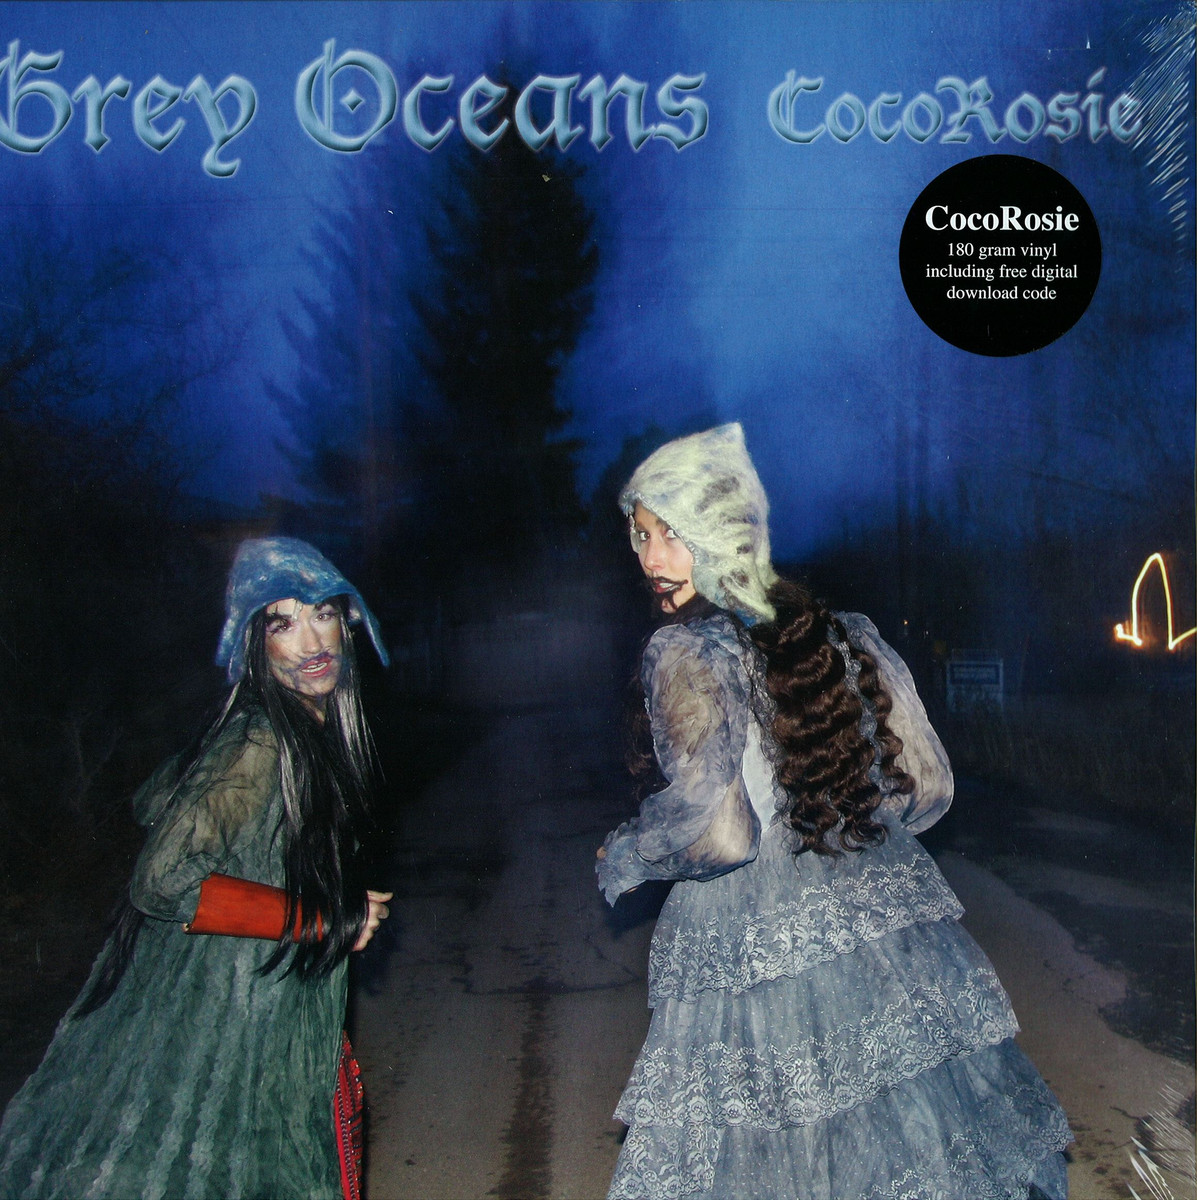 Cocorosie Grey Oceans Lp Mp3 Souterrain